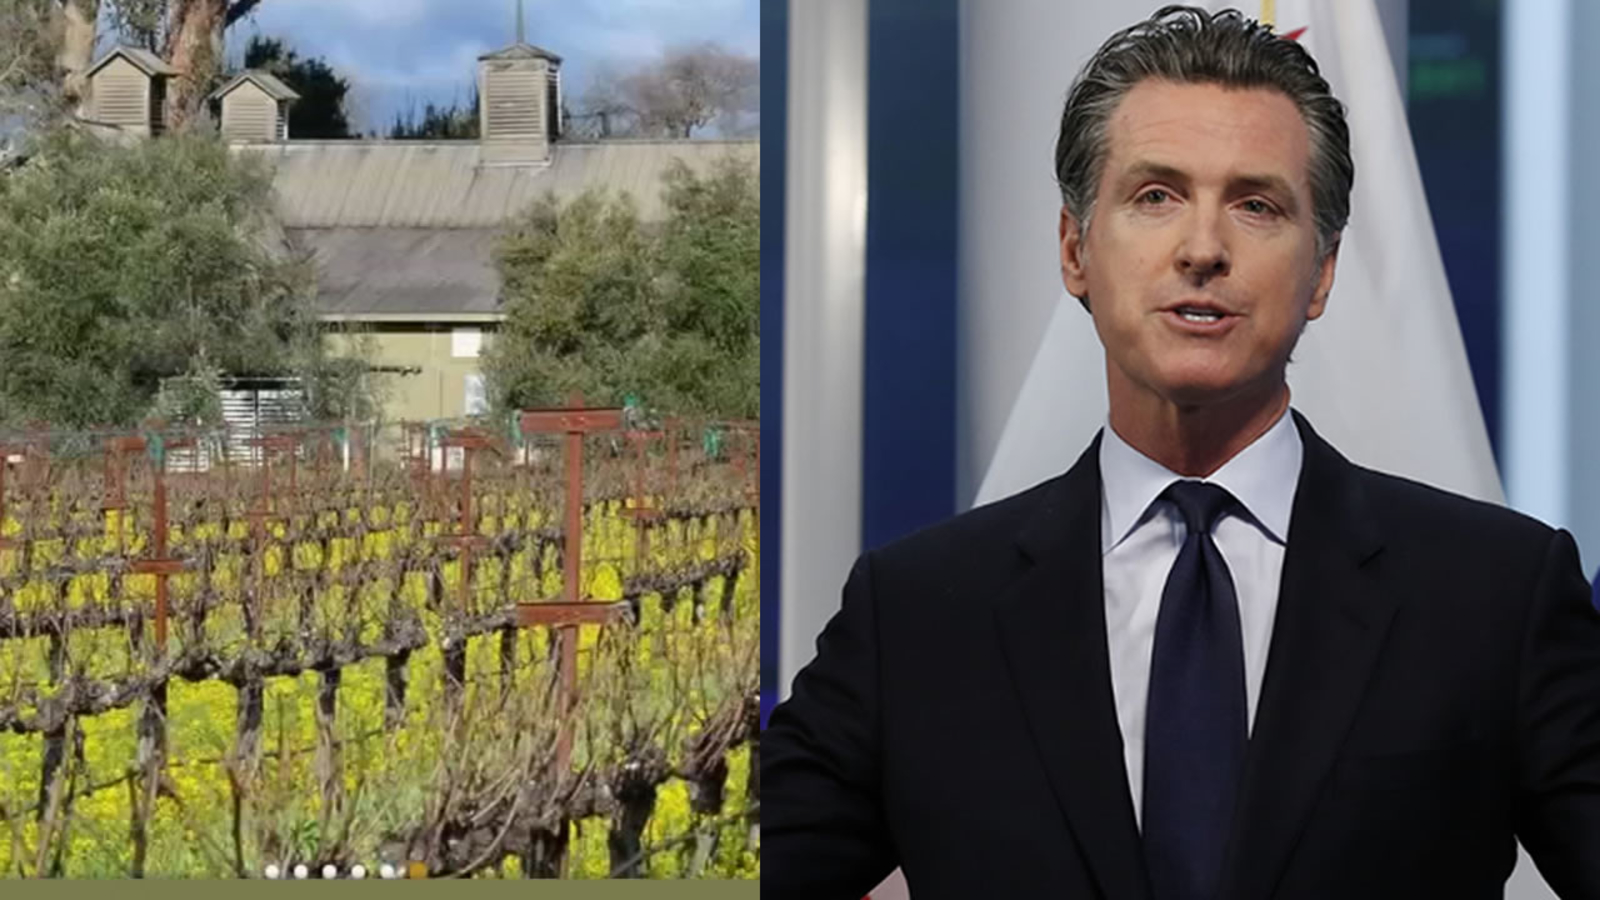 Nearly $ 3 million earmarked for small businesses amid the pandemic has gone to companies founded by Gov. Gavin Newsom, according to the data